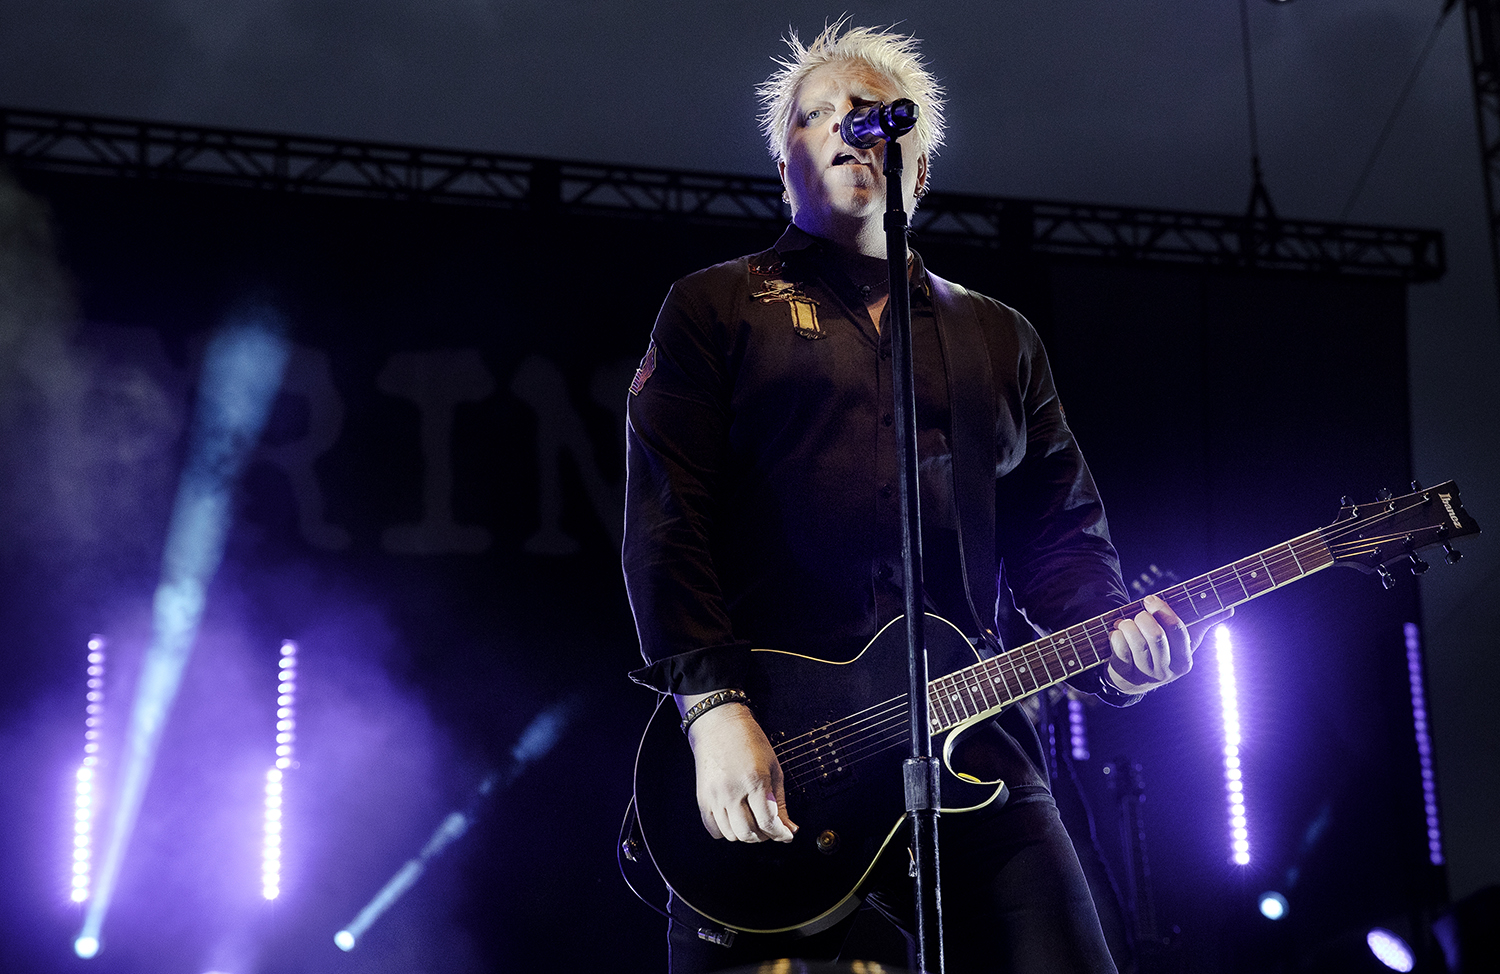 Dexter Holland performs with The Offspring at the Illinois State Fair Wednesday, Aug. 15, 2018. [Ted Schurter/The State Journal-Register]